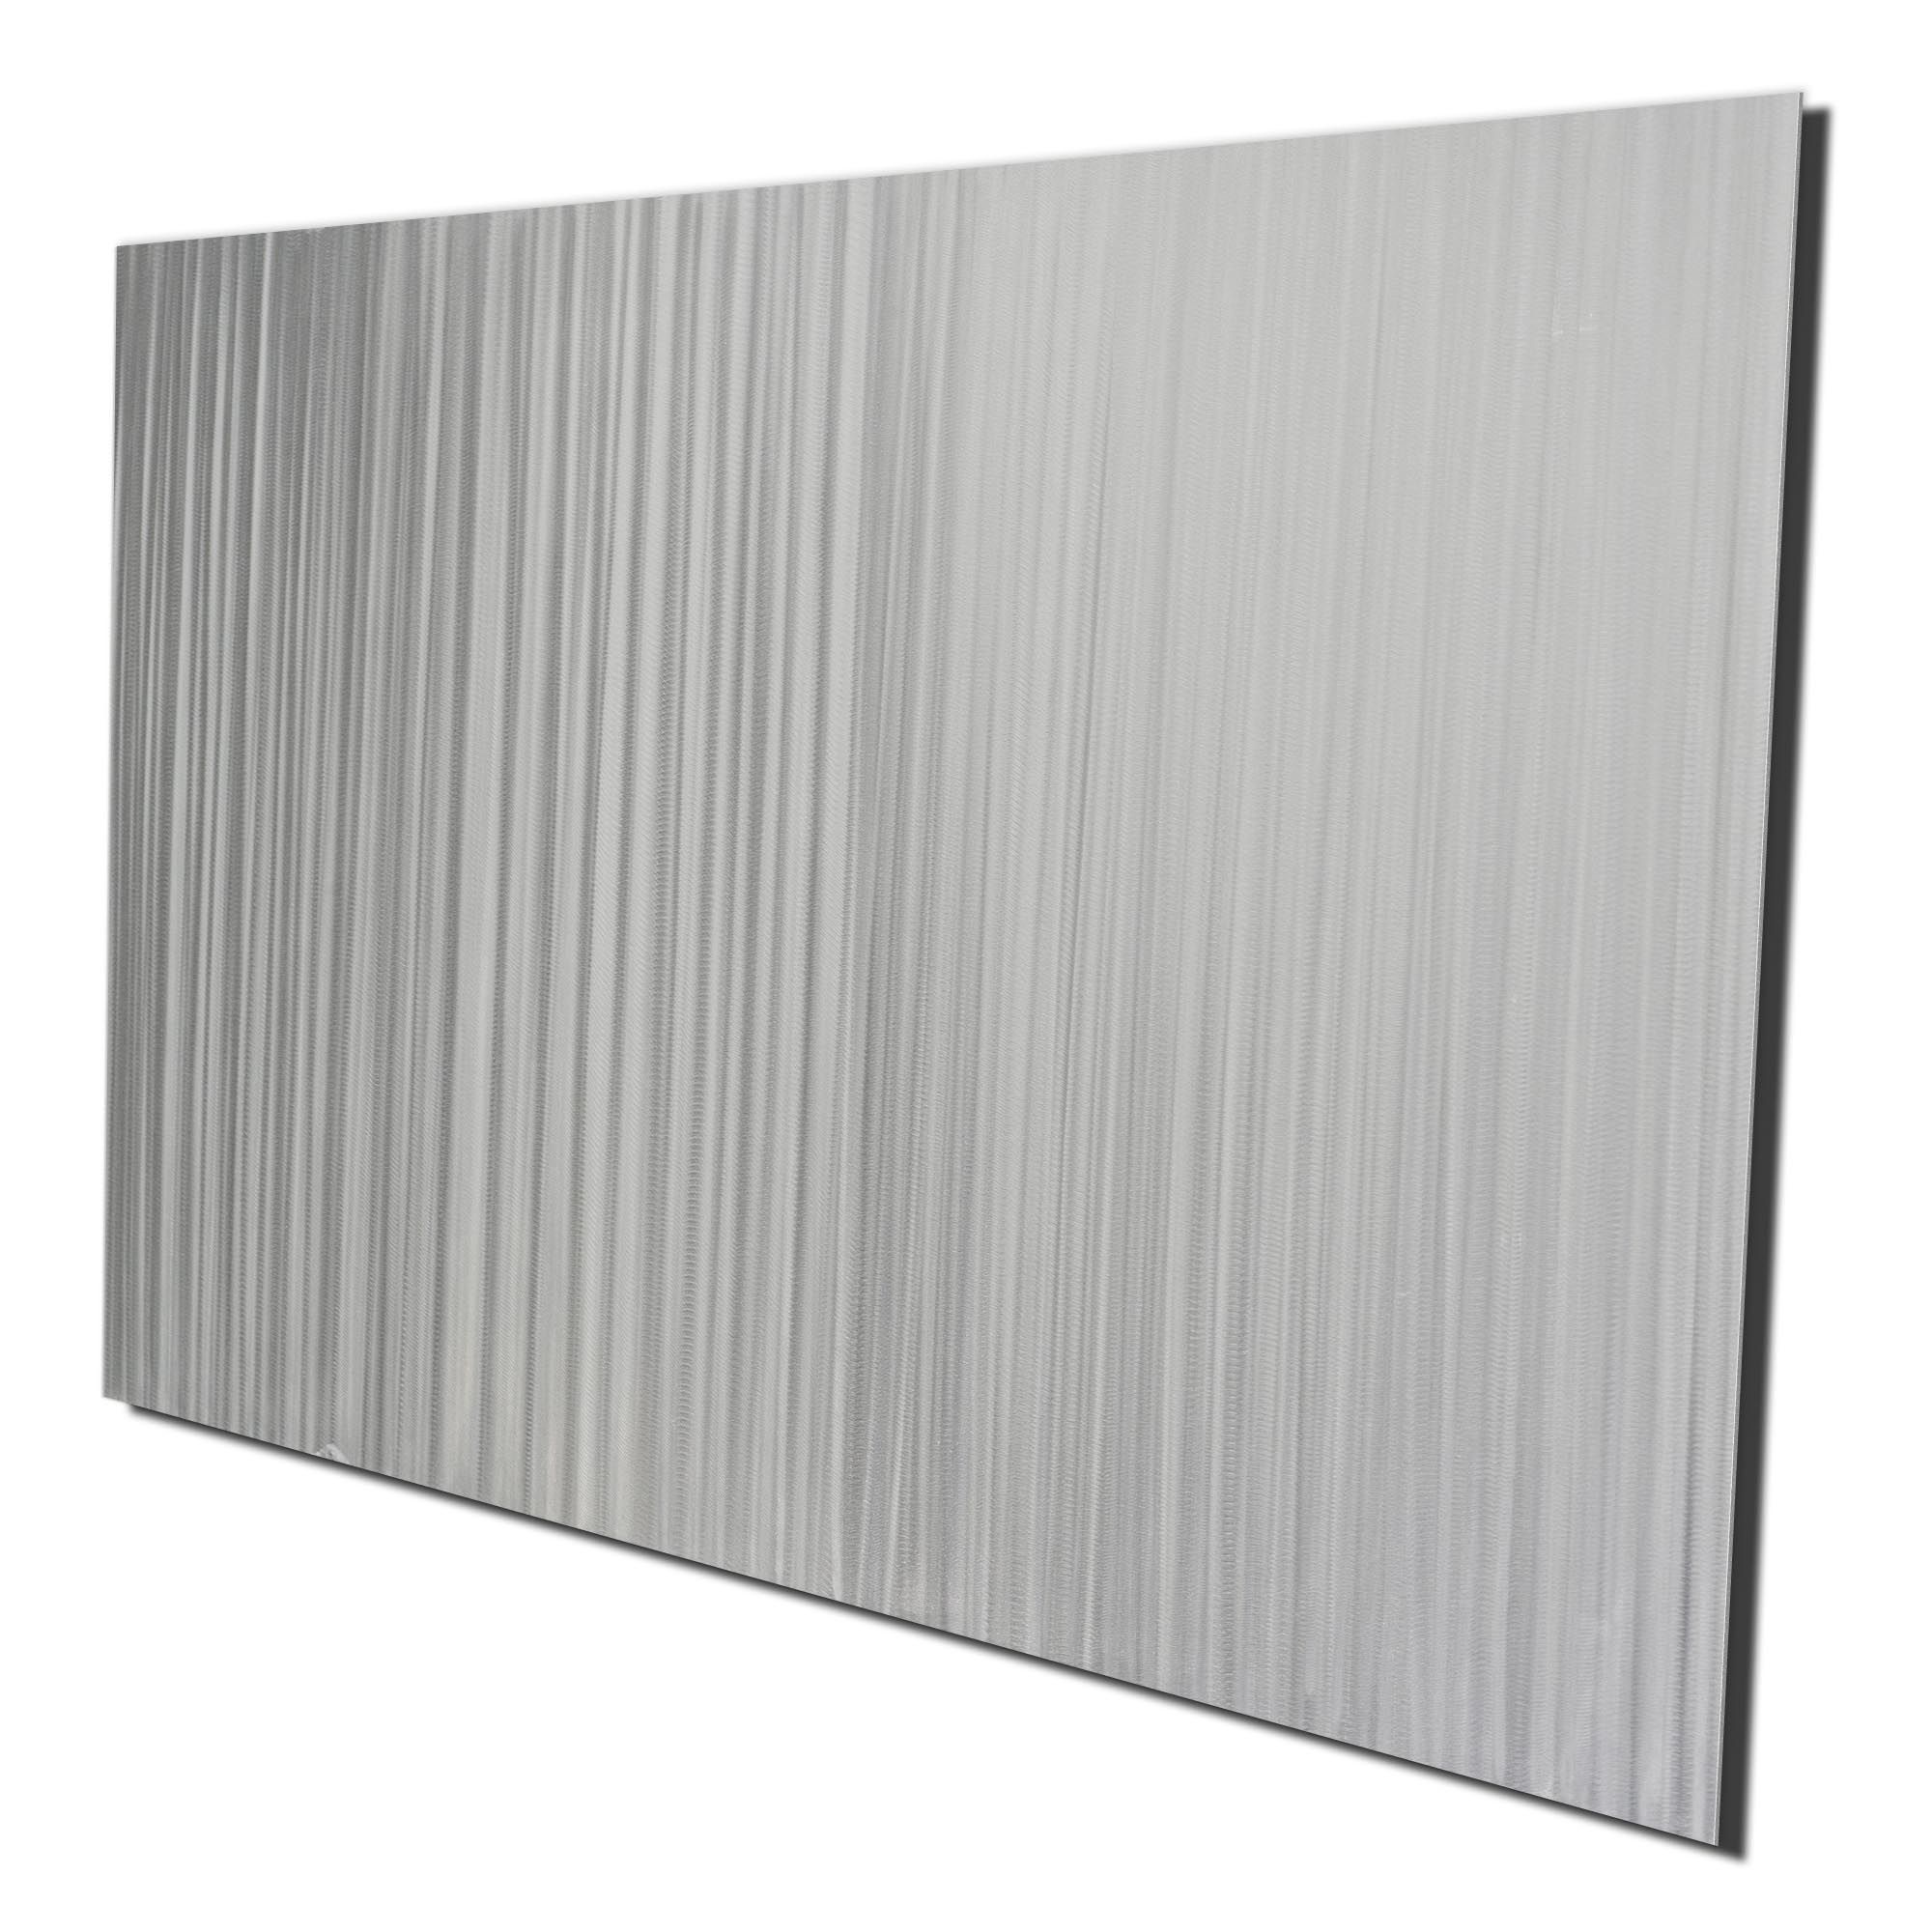 Silver Lines by Helena Martin - Original Abstract Metal Art on Ground Metal - Image 2